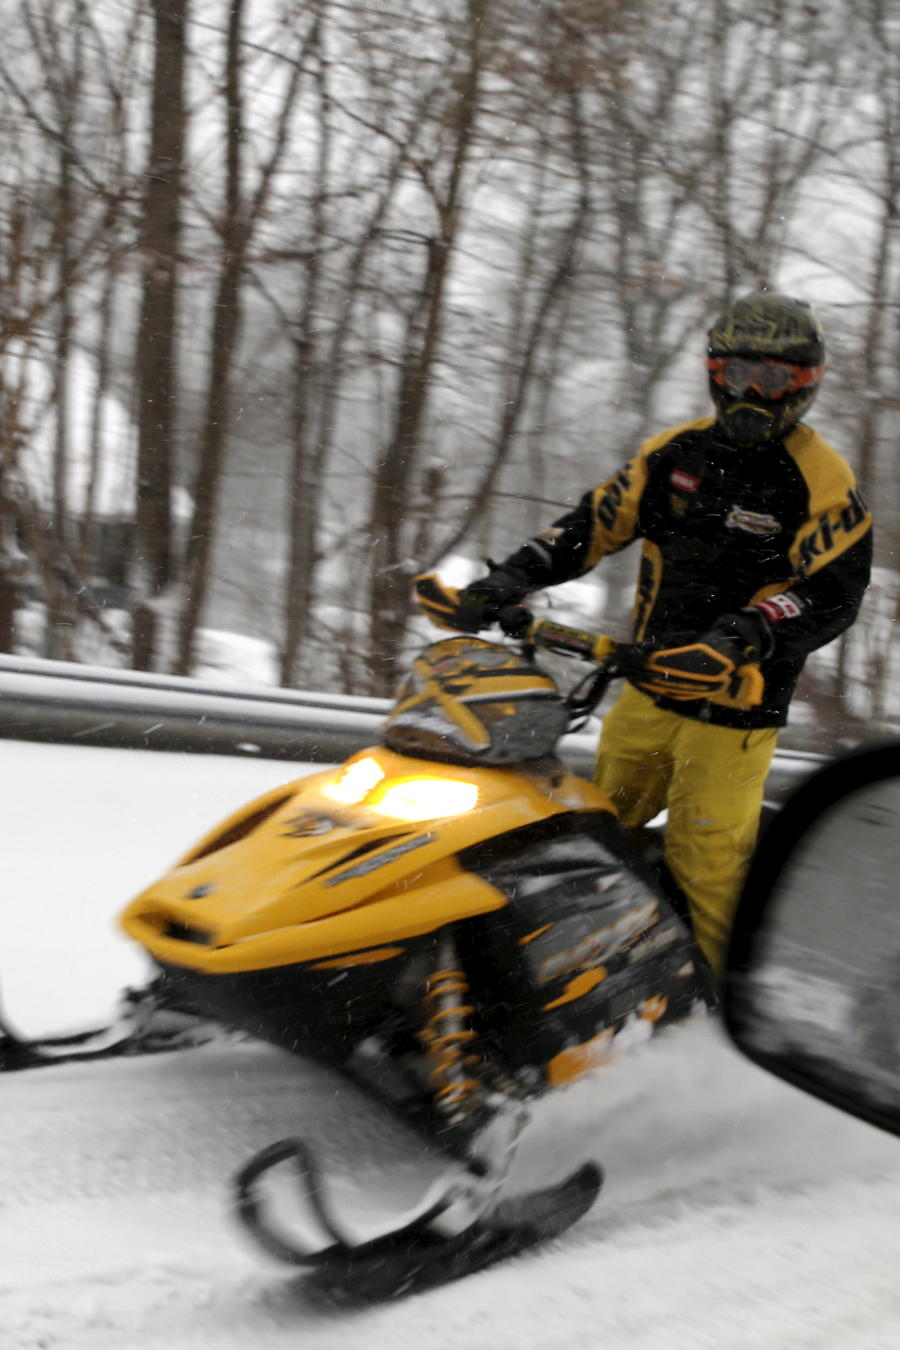 A man rides a snowmobile on a street in the village of Upper Nyack, New York, a northern suburb of New York City